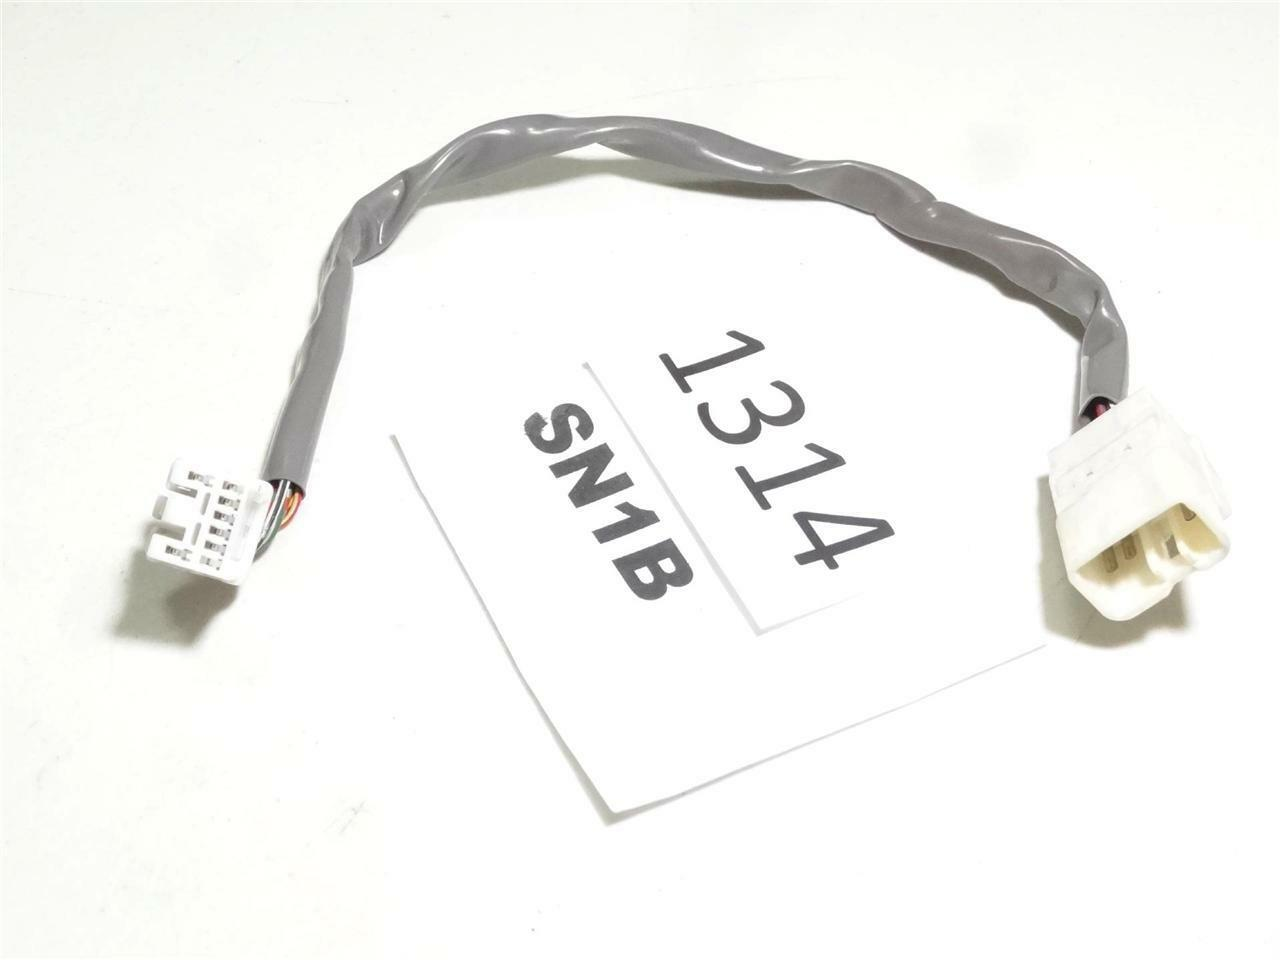 1992-1996 TOYOTA CAMRY WIRE HARNESS RECIRCULATE MOTOR AIR CONDITION OEM  SN1B1314 | eBayeBay